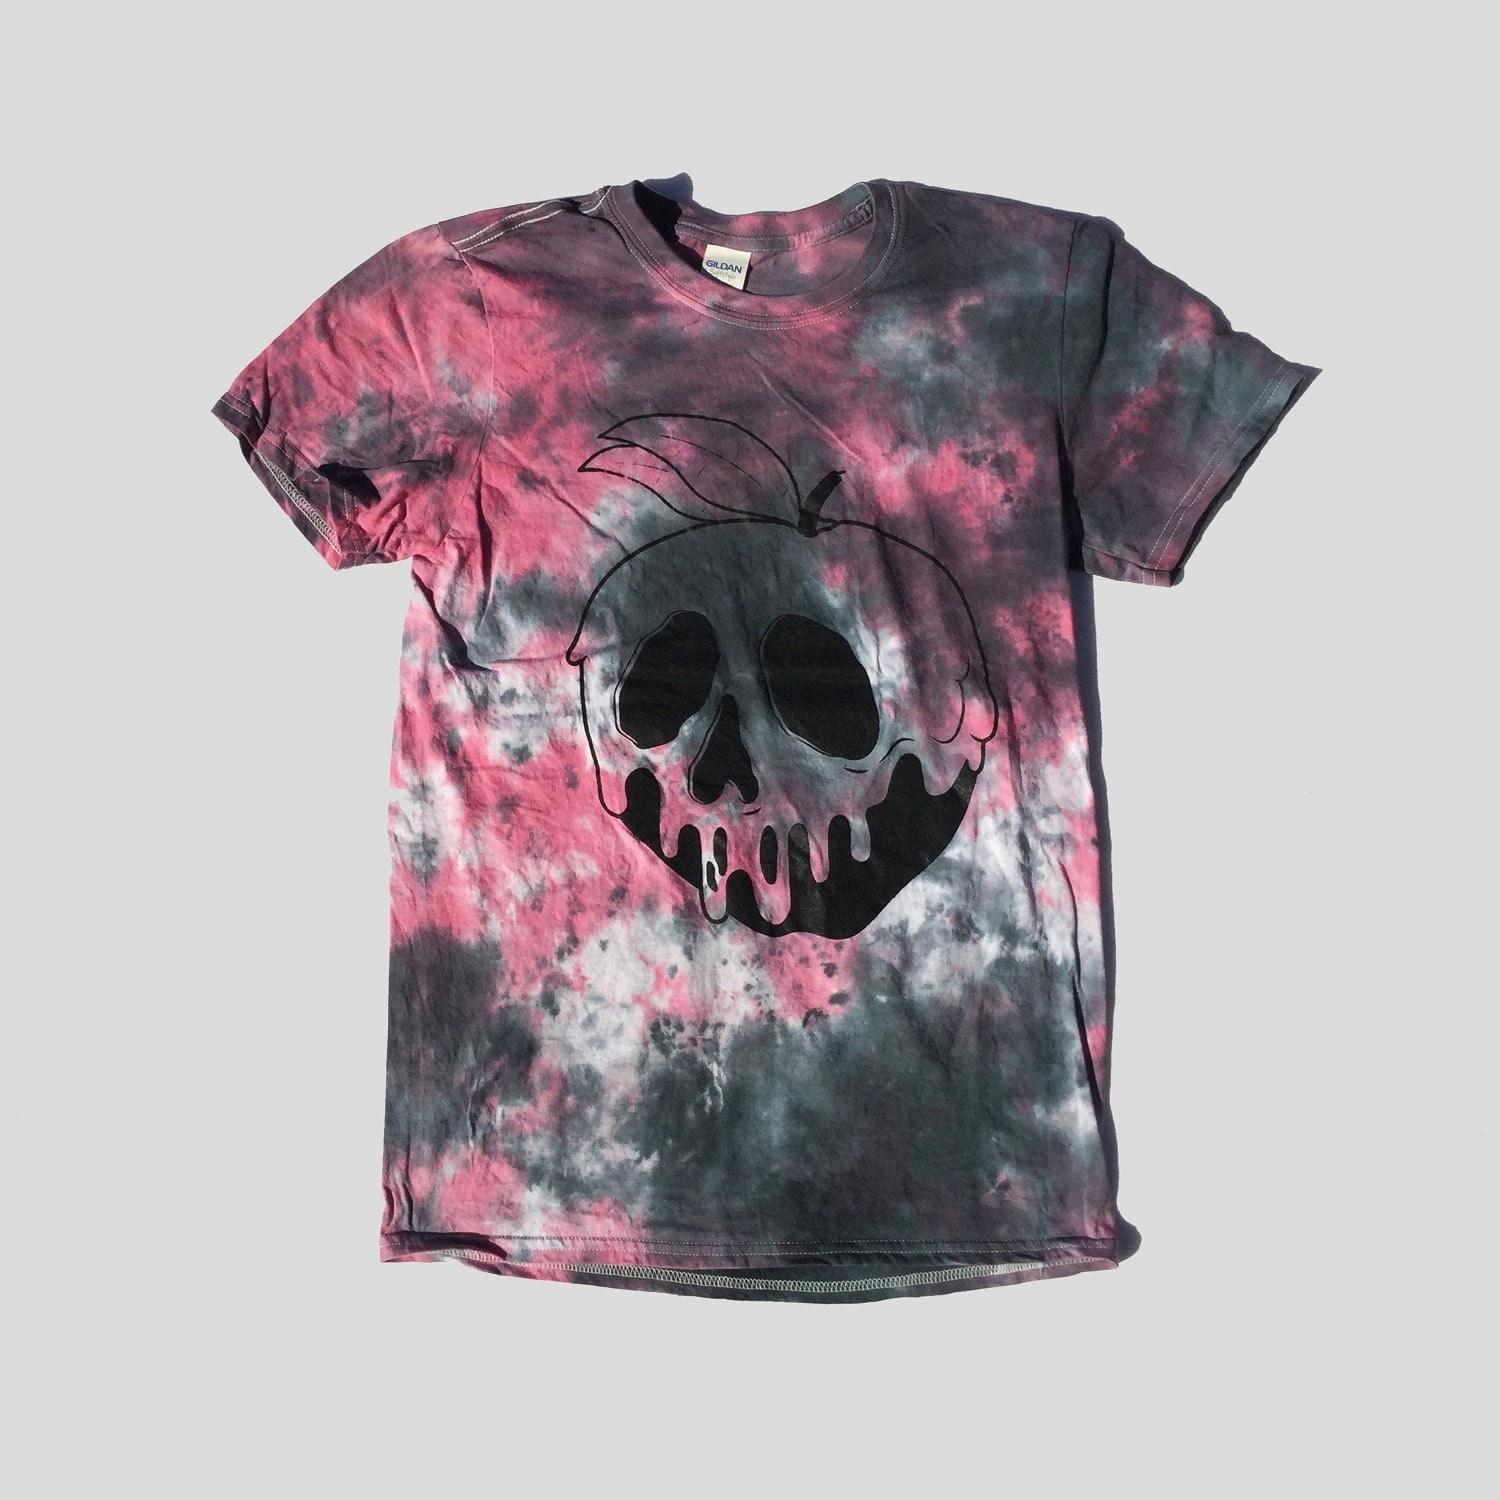 Cosmic Space Galaxy Inverted Cross Pastel Goth Jumper Hipster Indie Swag Dope Hype Black White Mens Womens Cute Alien UFO Aliens sv5v3ceQez